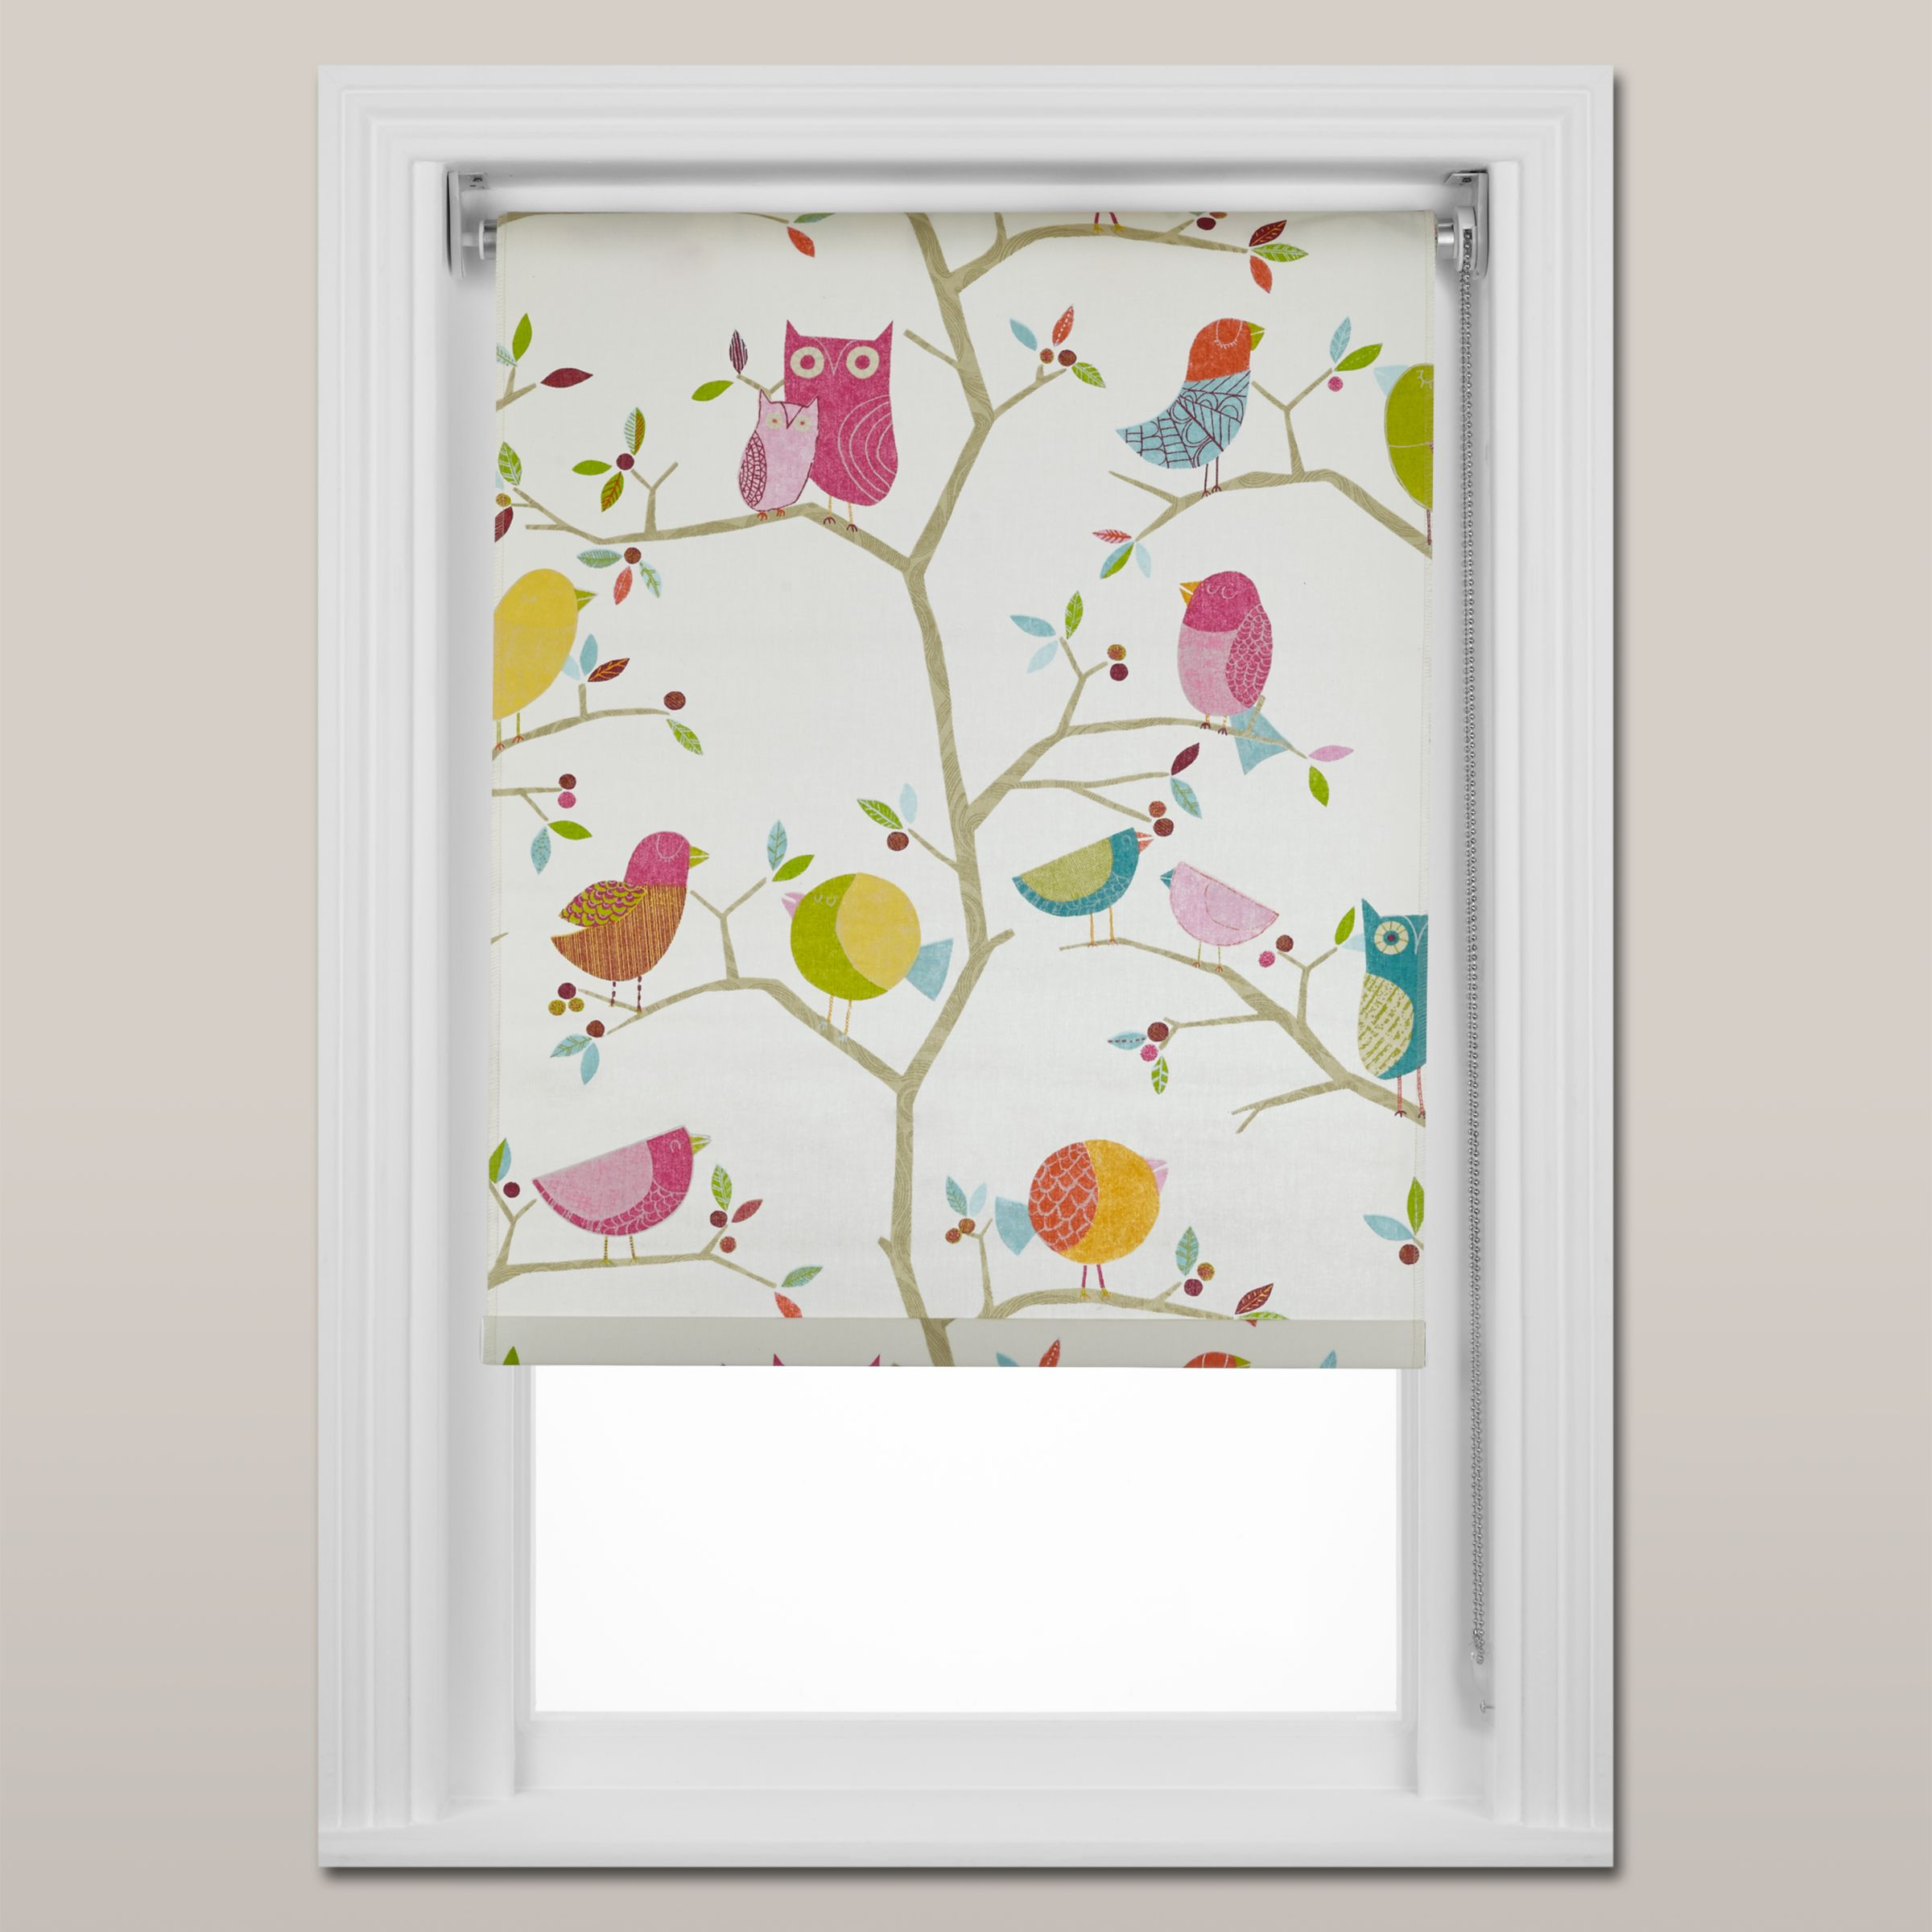 Harlequin Harlequin What a Hoot Roller Blind, Chain Mechanism